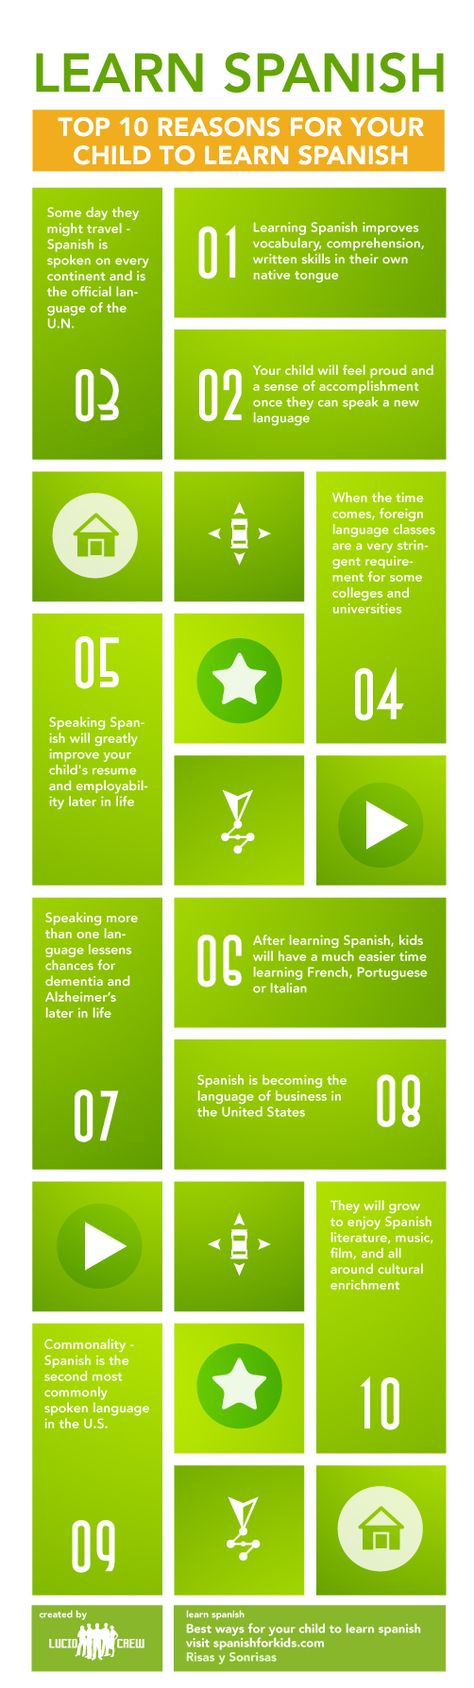 Top 10 reasons for your child to learn spanish #infografia #infographic #education